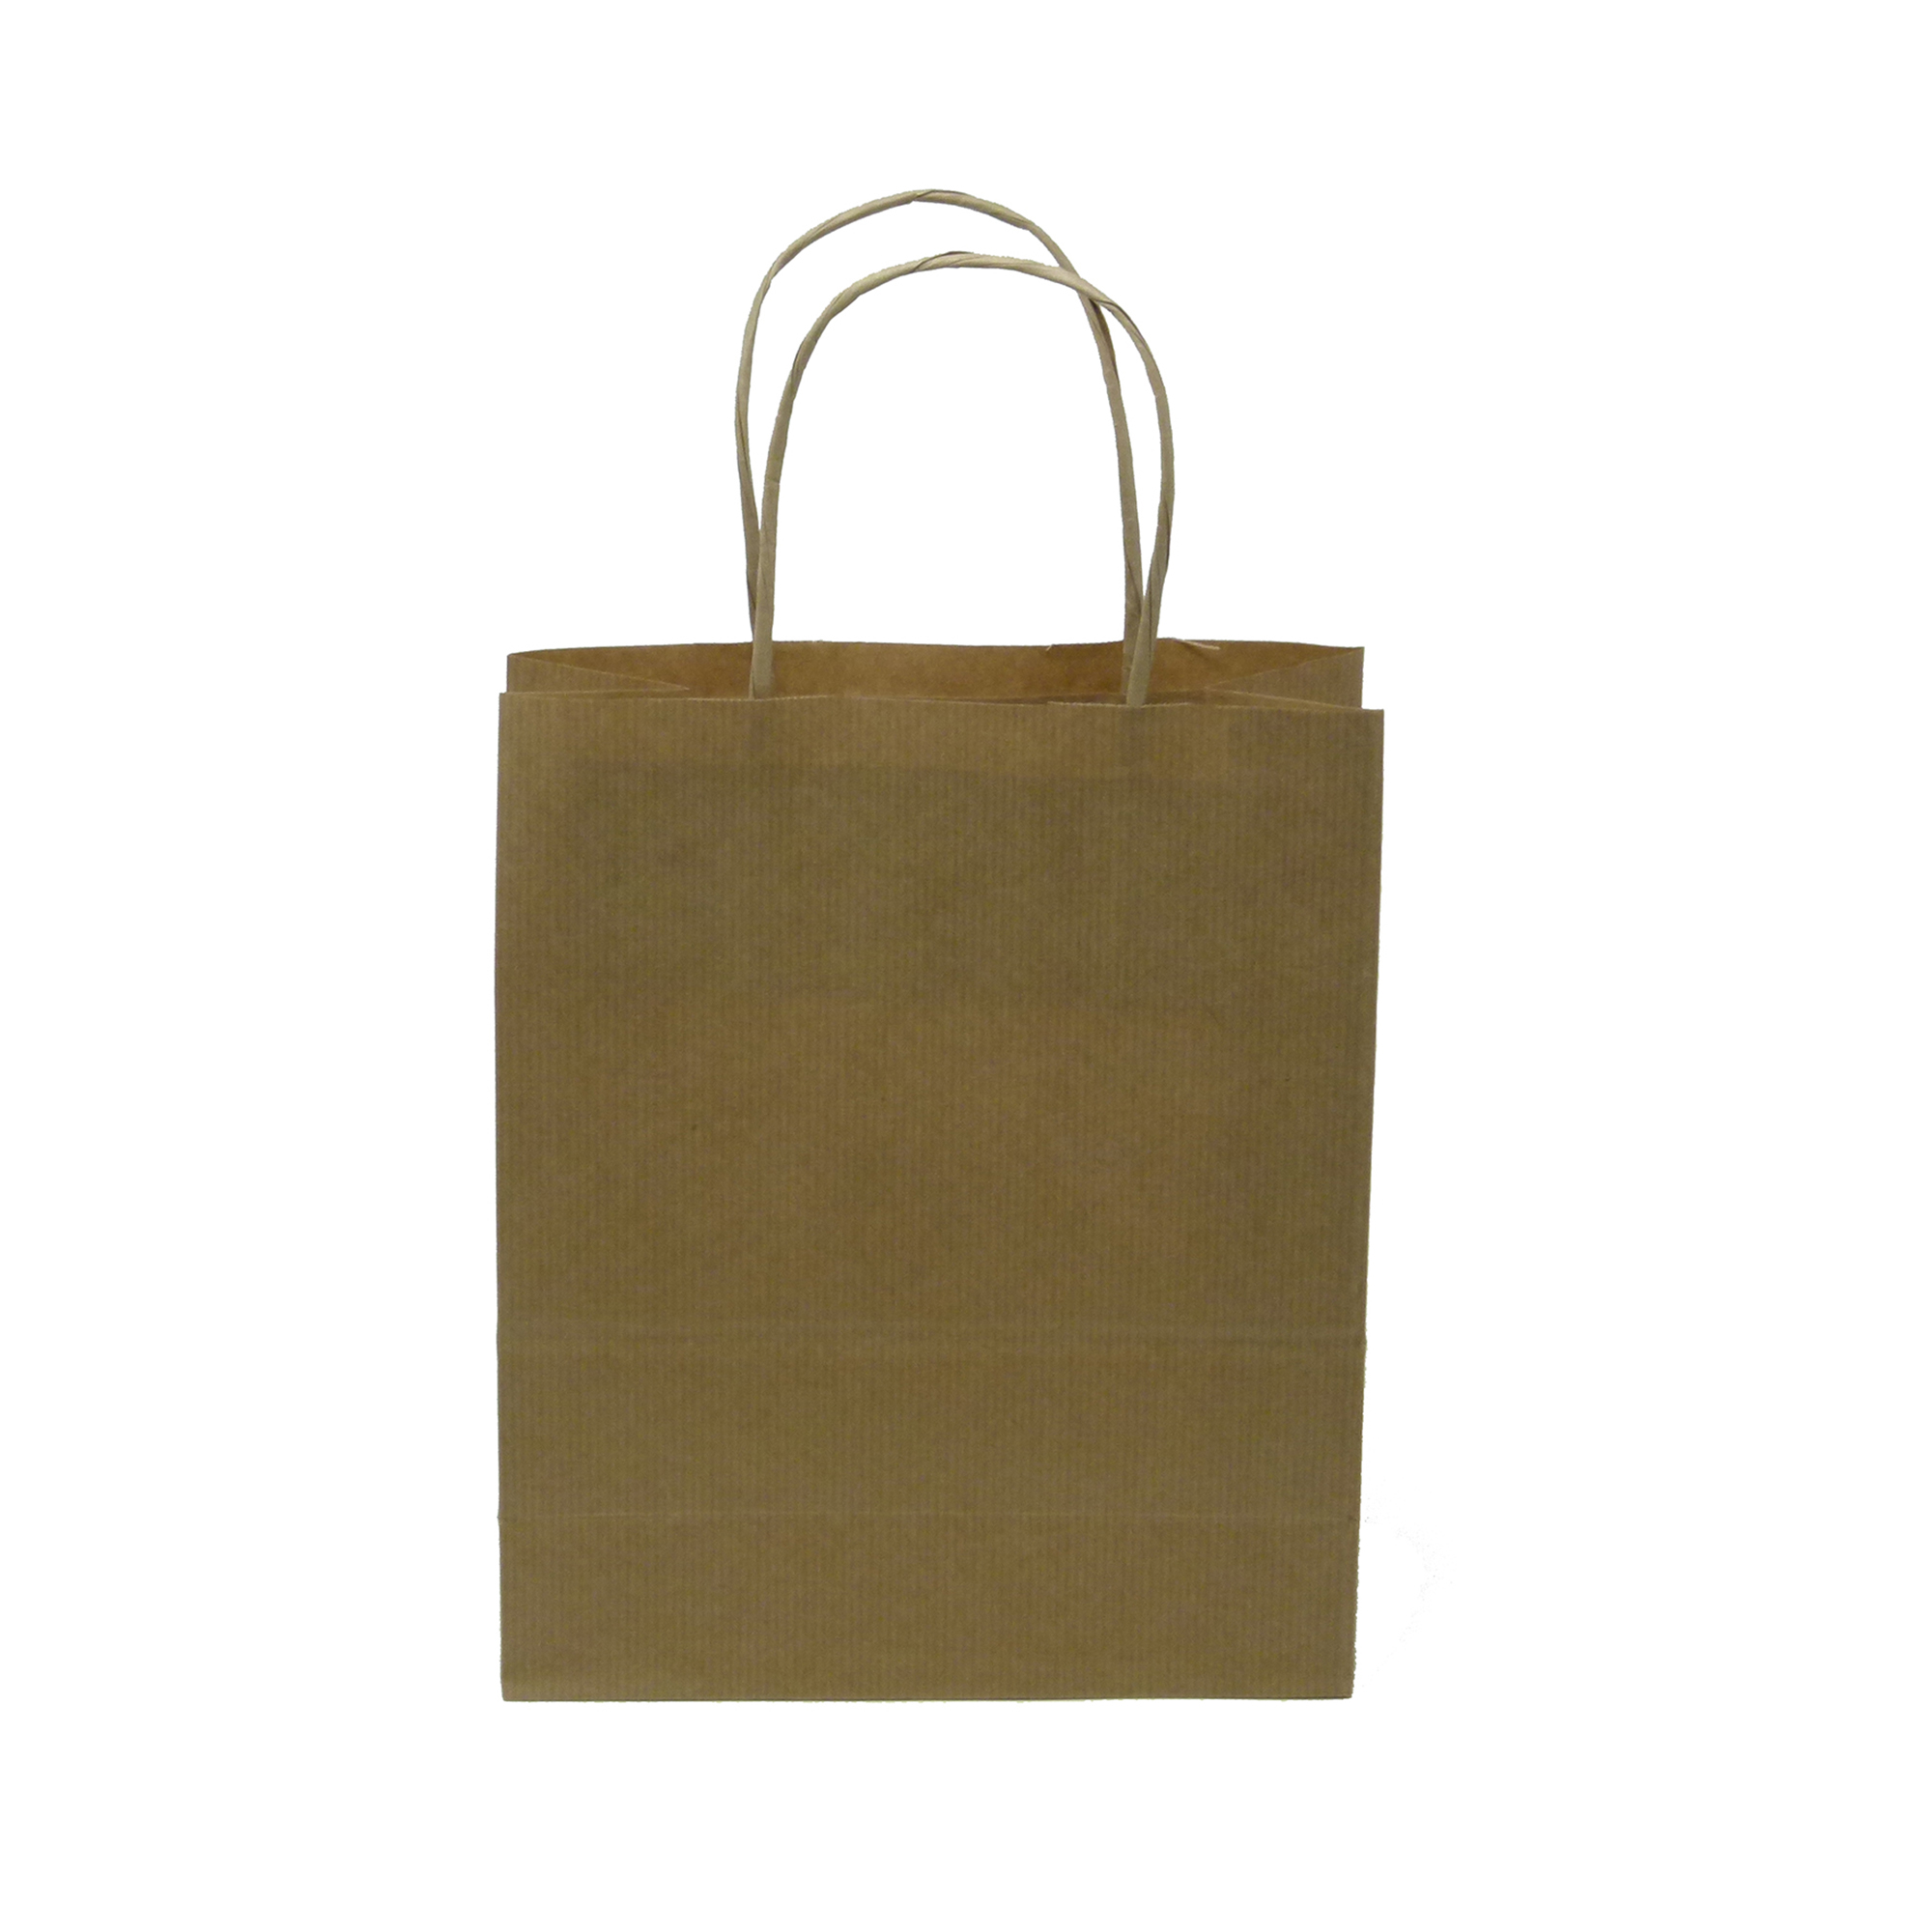 Paper bags Kraft Paper Carrier Bag Twisted Handles Medium 260x340x120mm 90g Natural Brown Ref 12929 [Pack 100]